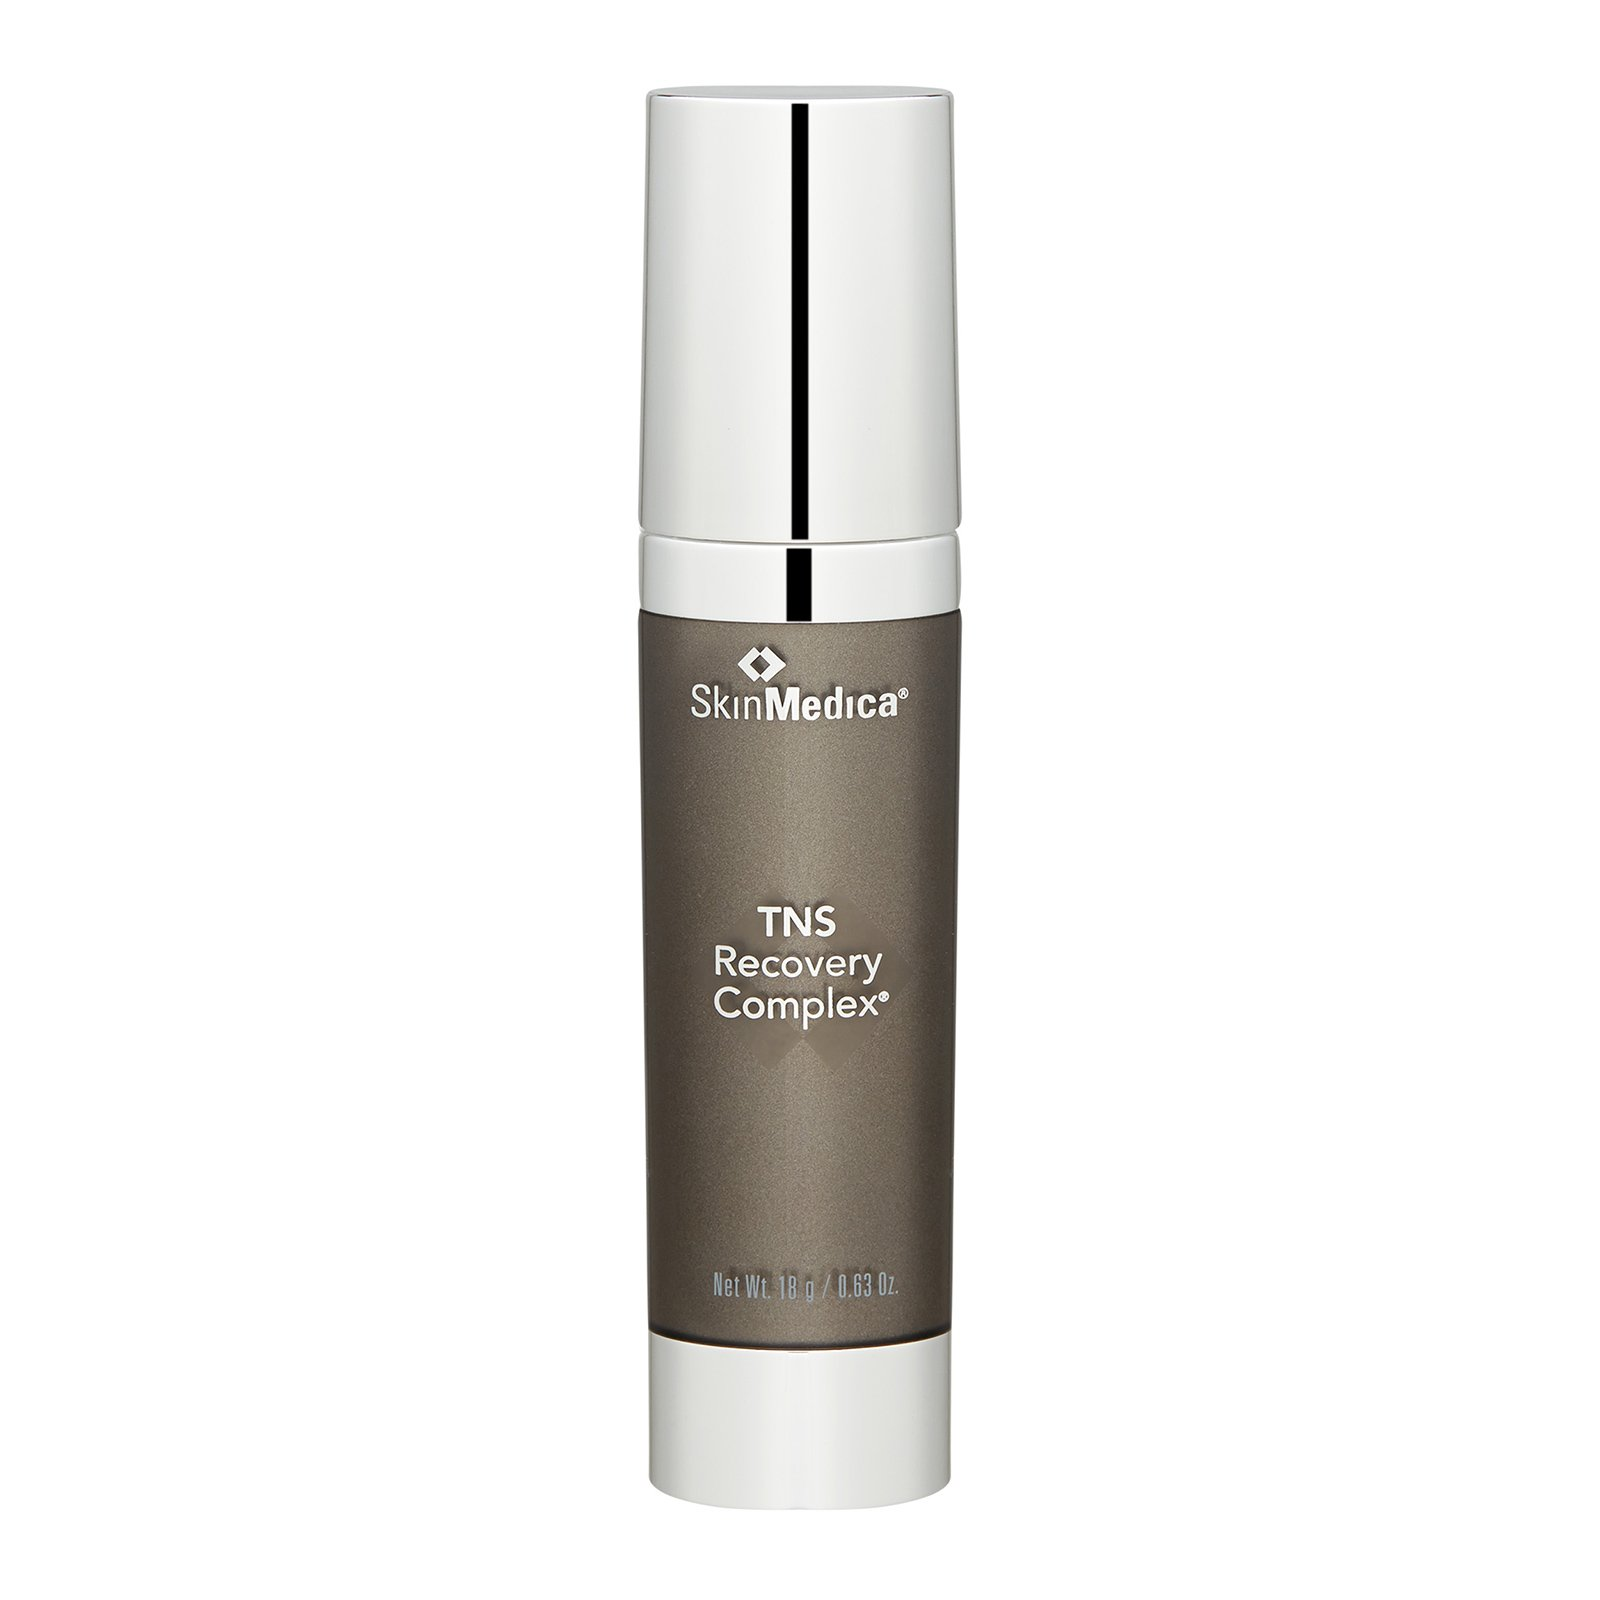 SkinMedica  TNS Recovery Complex® 0.63oz, 18g